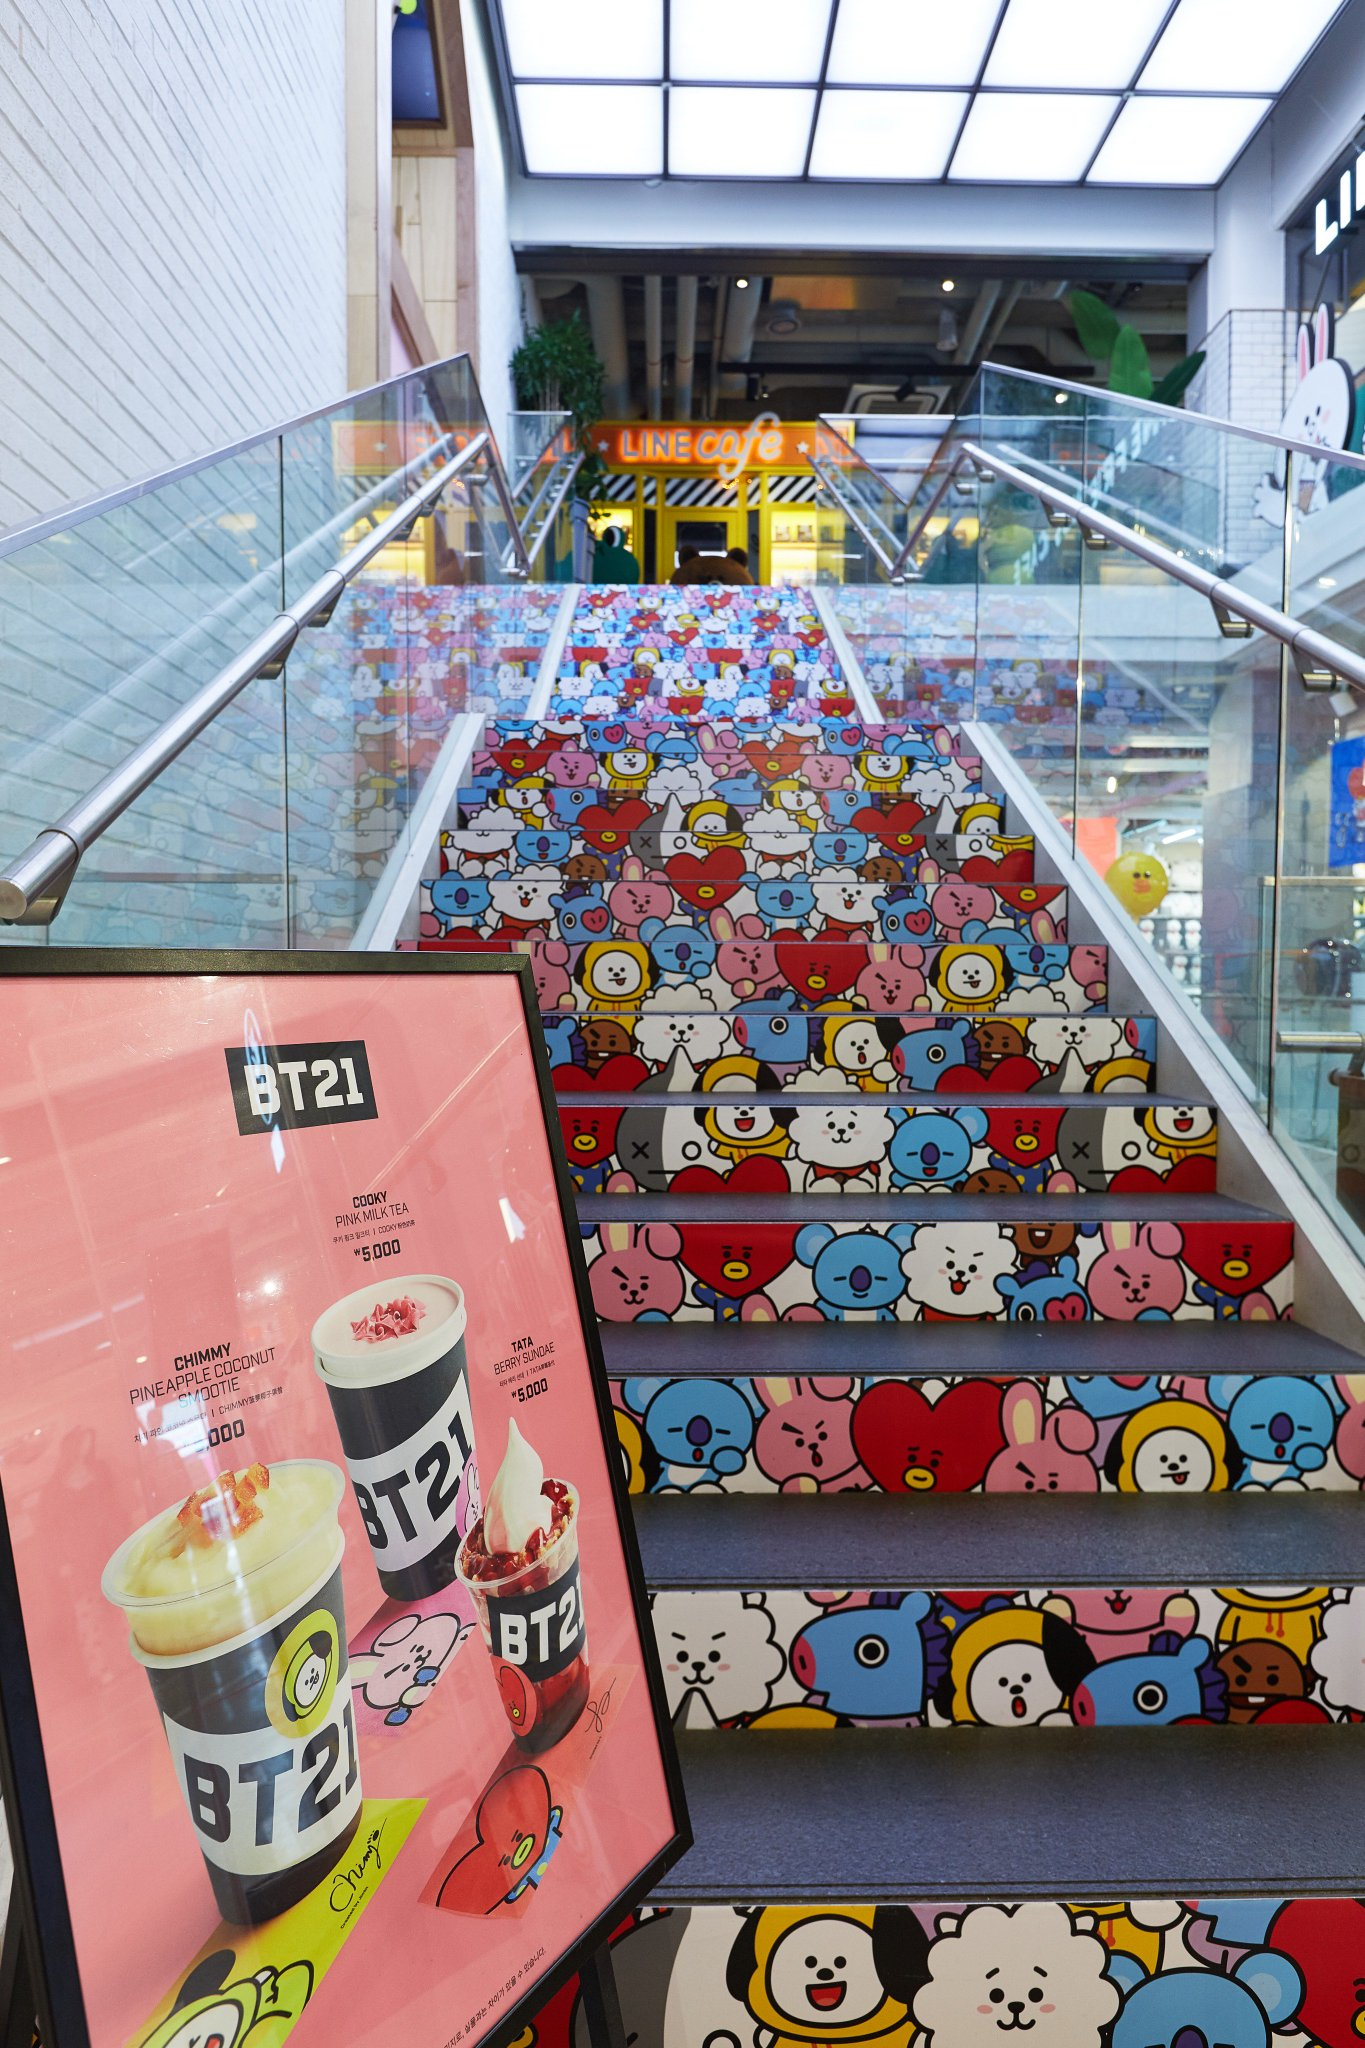 Stairway to the birthplace of #BT21 https://t.co/dhmGseMVX2